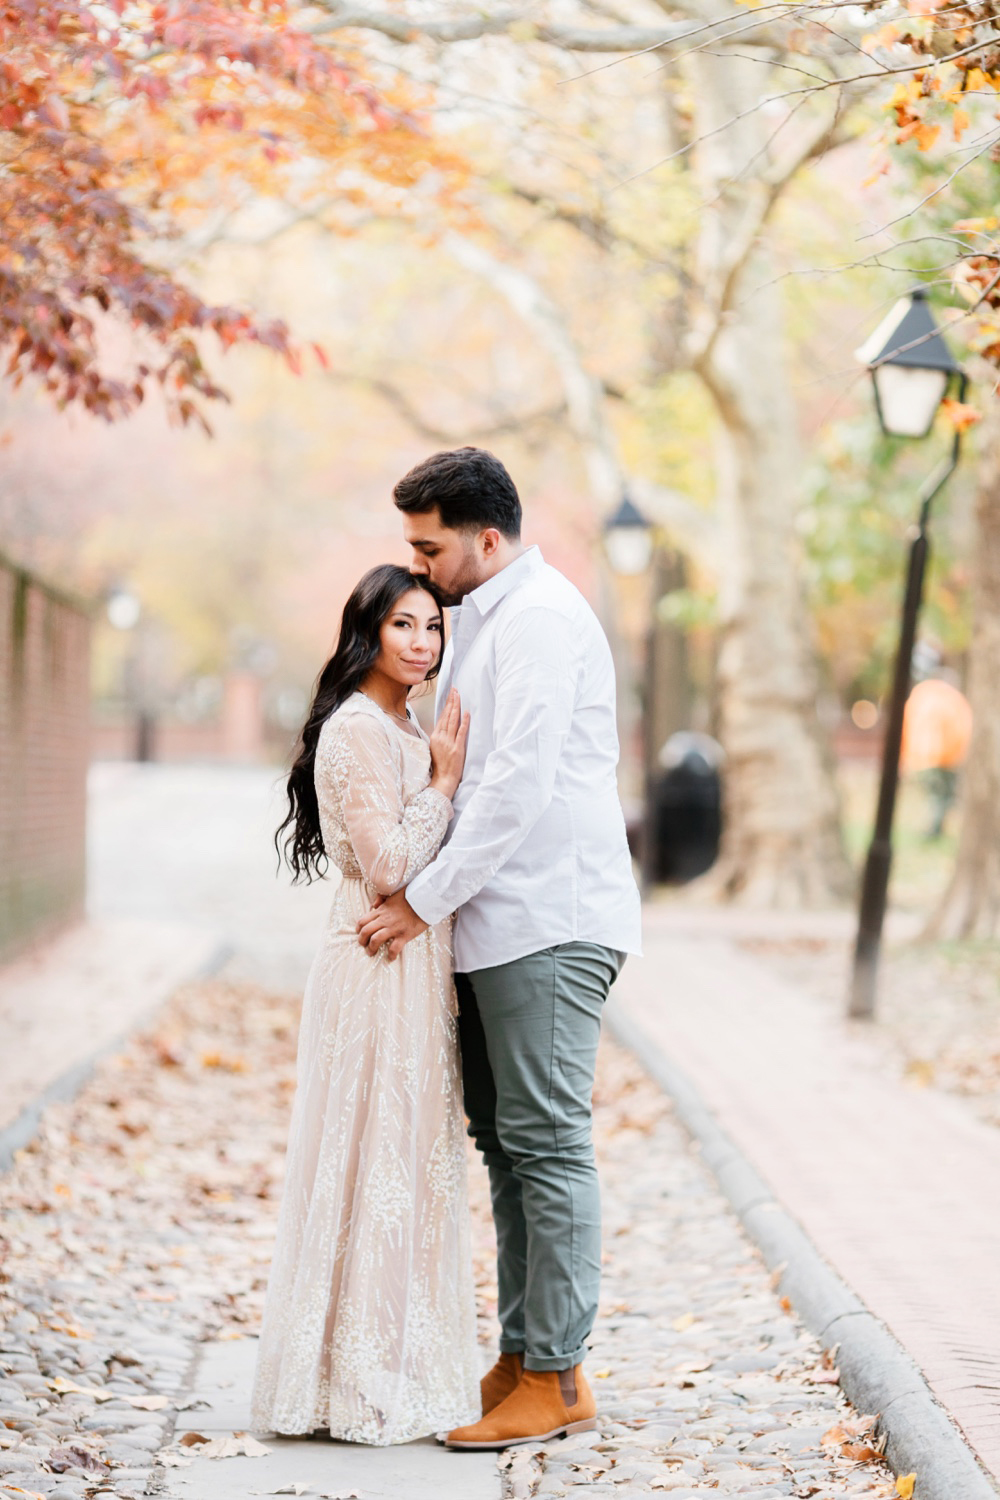 32 Milanee&Amine 130 Philadelphia Engagement Philadelphia Wedding Photographer Fine Art Wedding Photographer Light And Airy